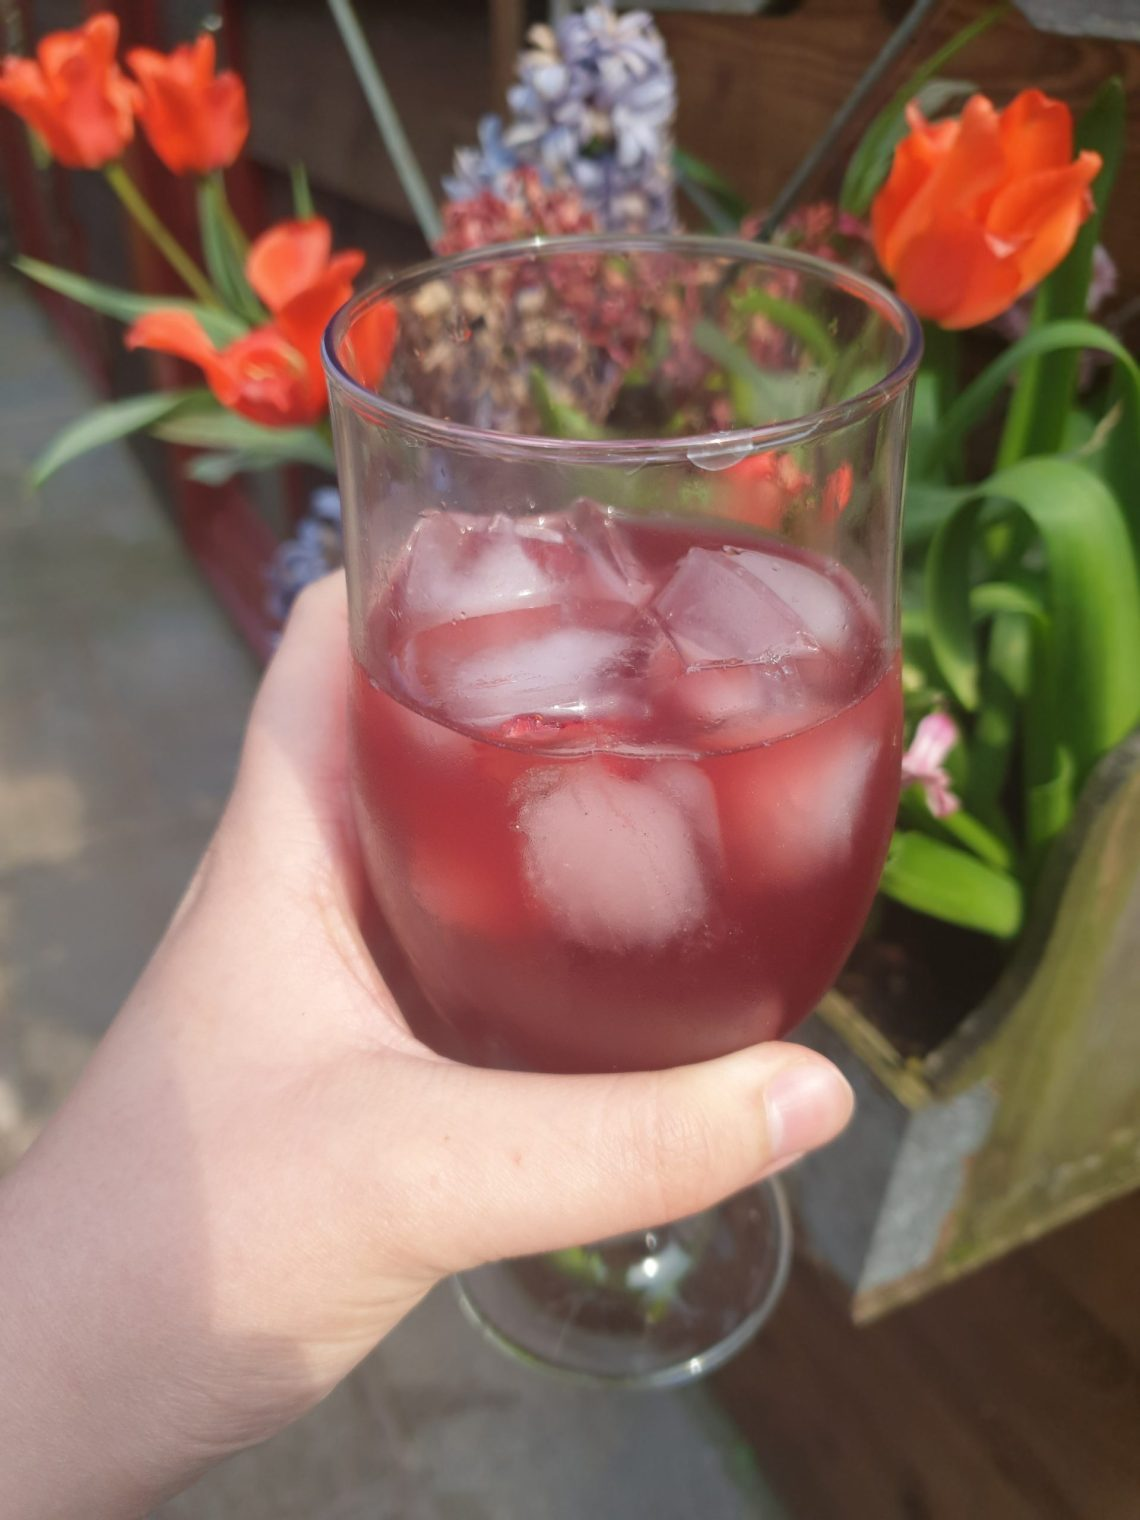 A glass of Sunny Sangria by Lollipop